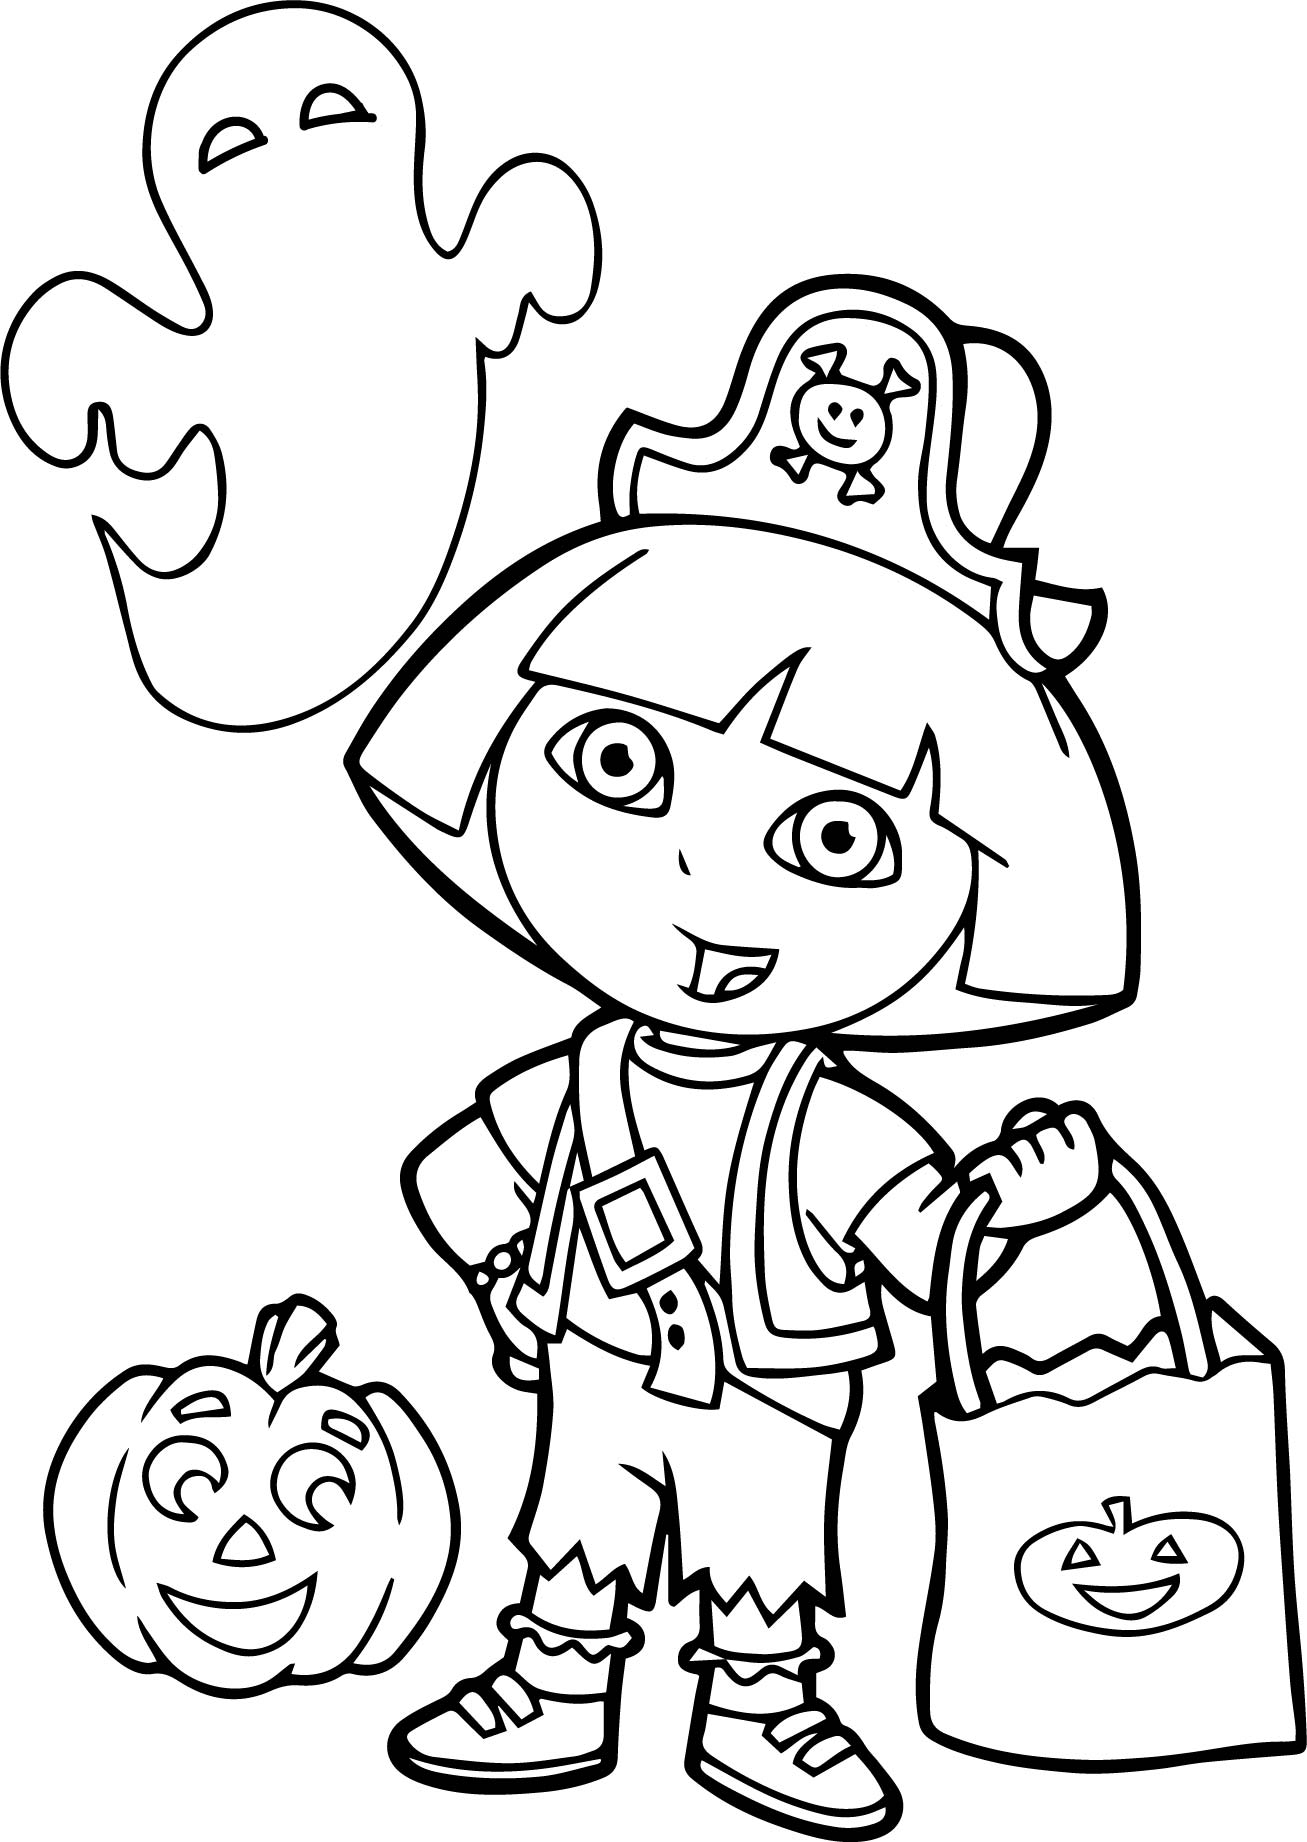 dora color page - dora halloween coloring page